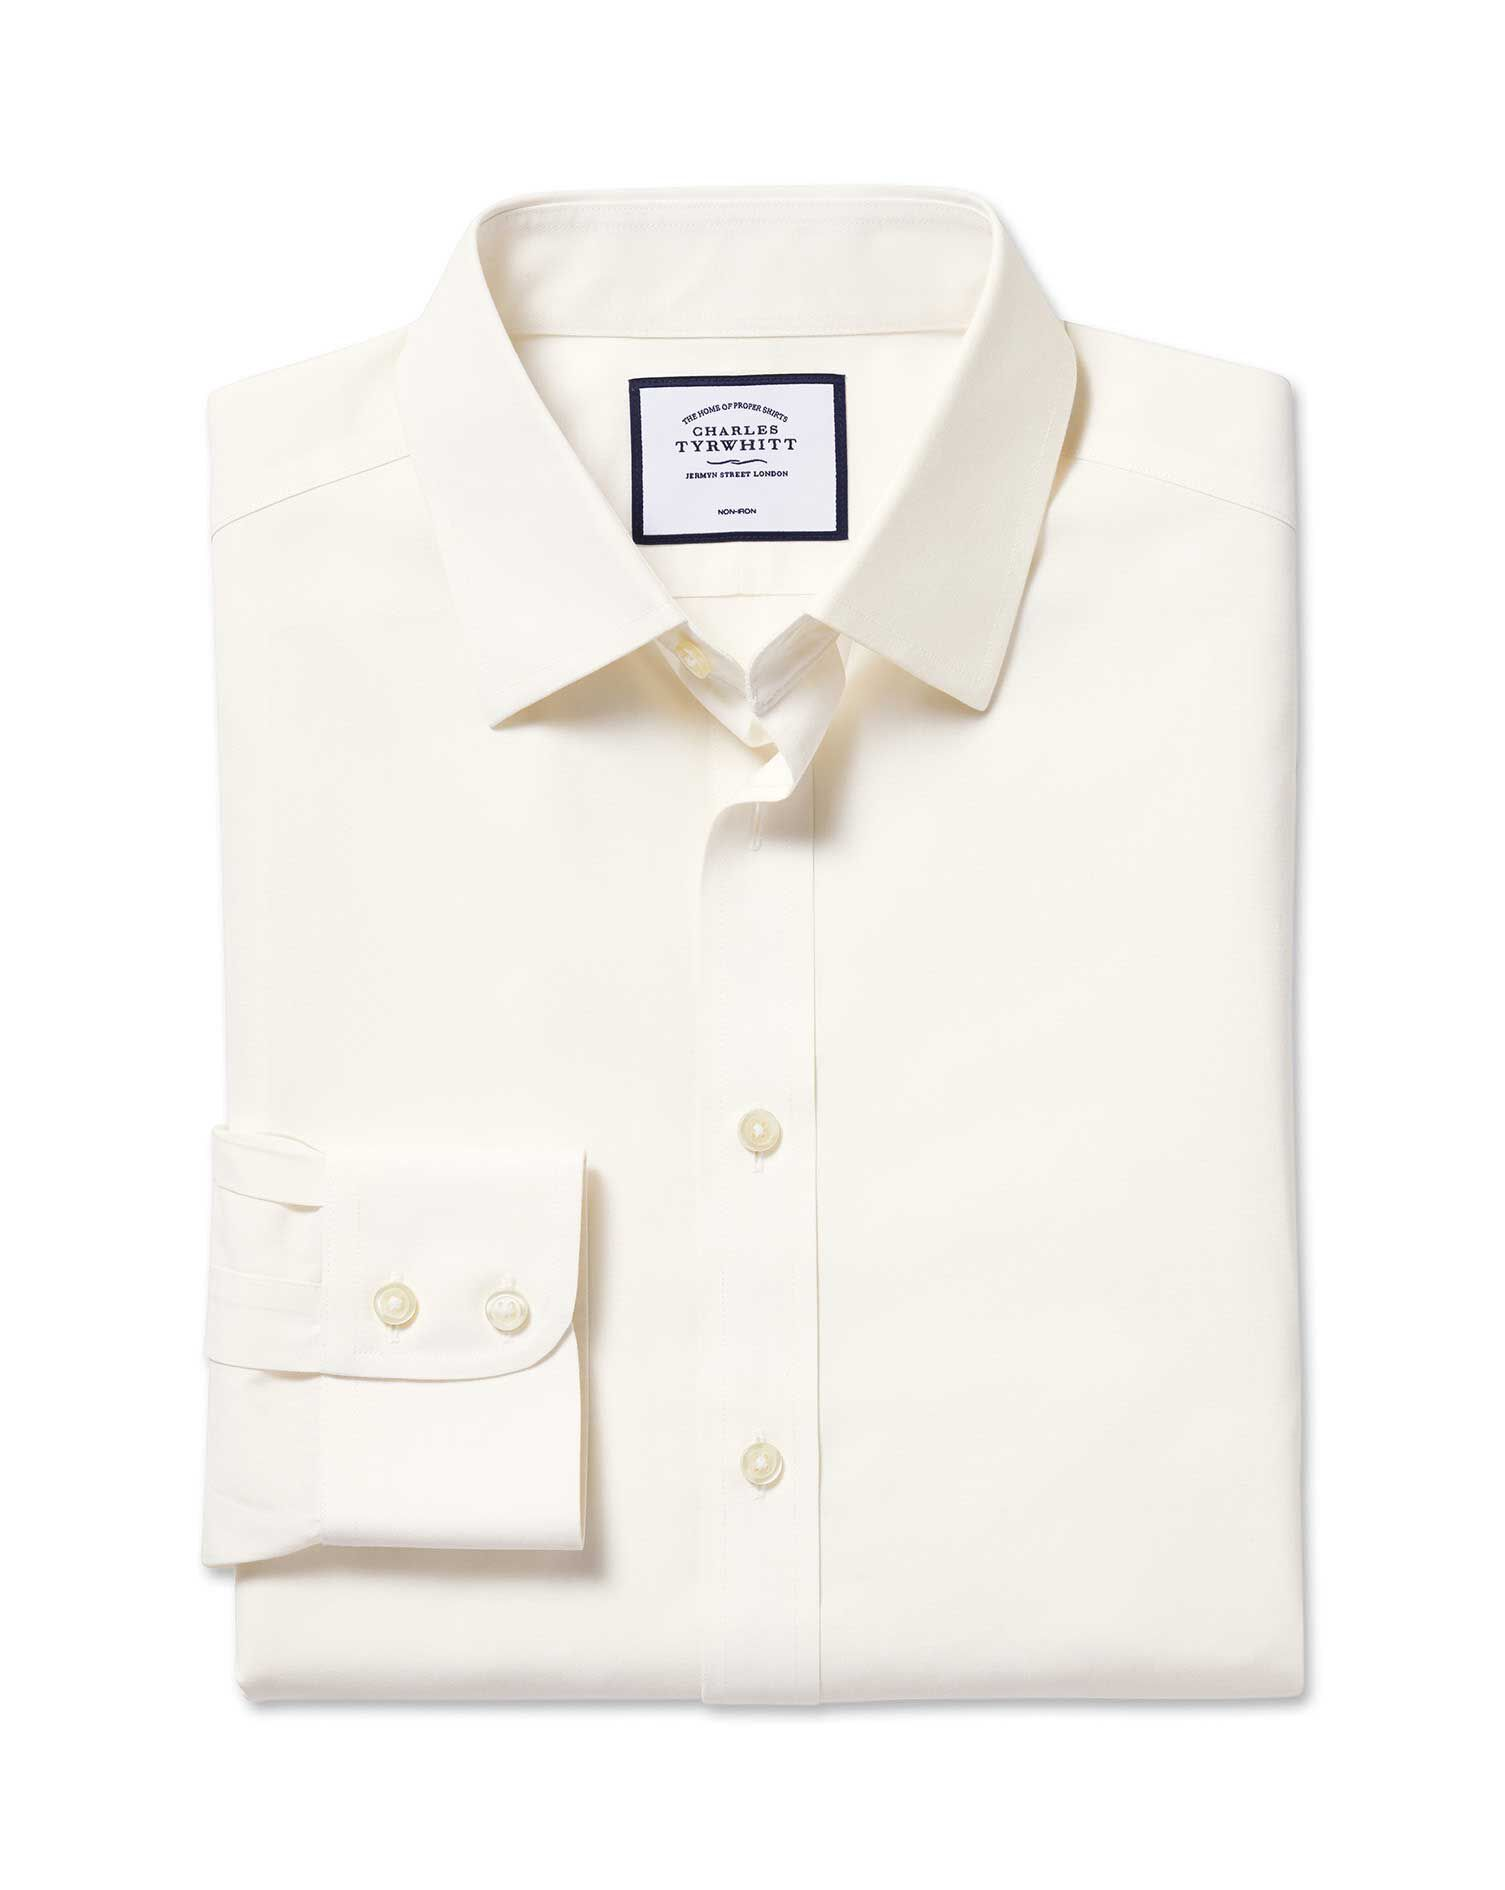 Slim Fit Non-Iron Poplin Cream Cotton Formal Shirt Single Cuff Size 17/35 by Charles Tyrwhitt